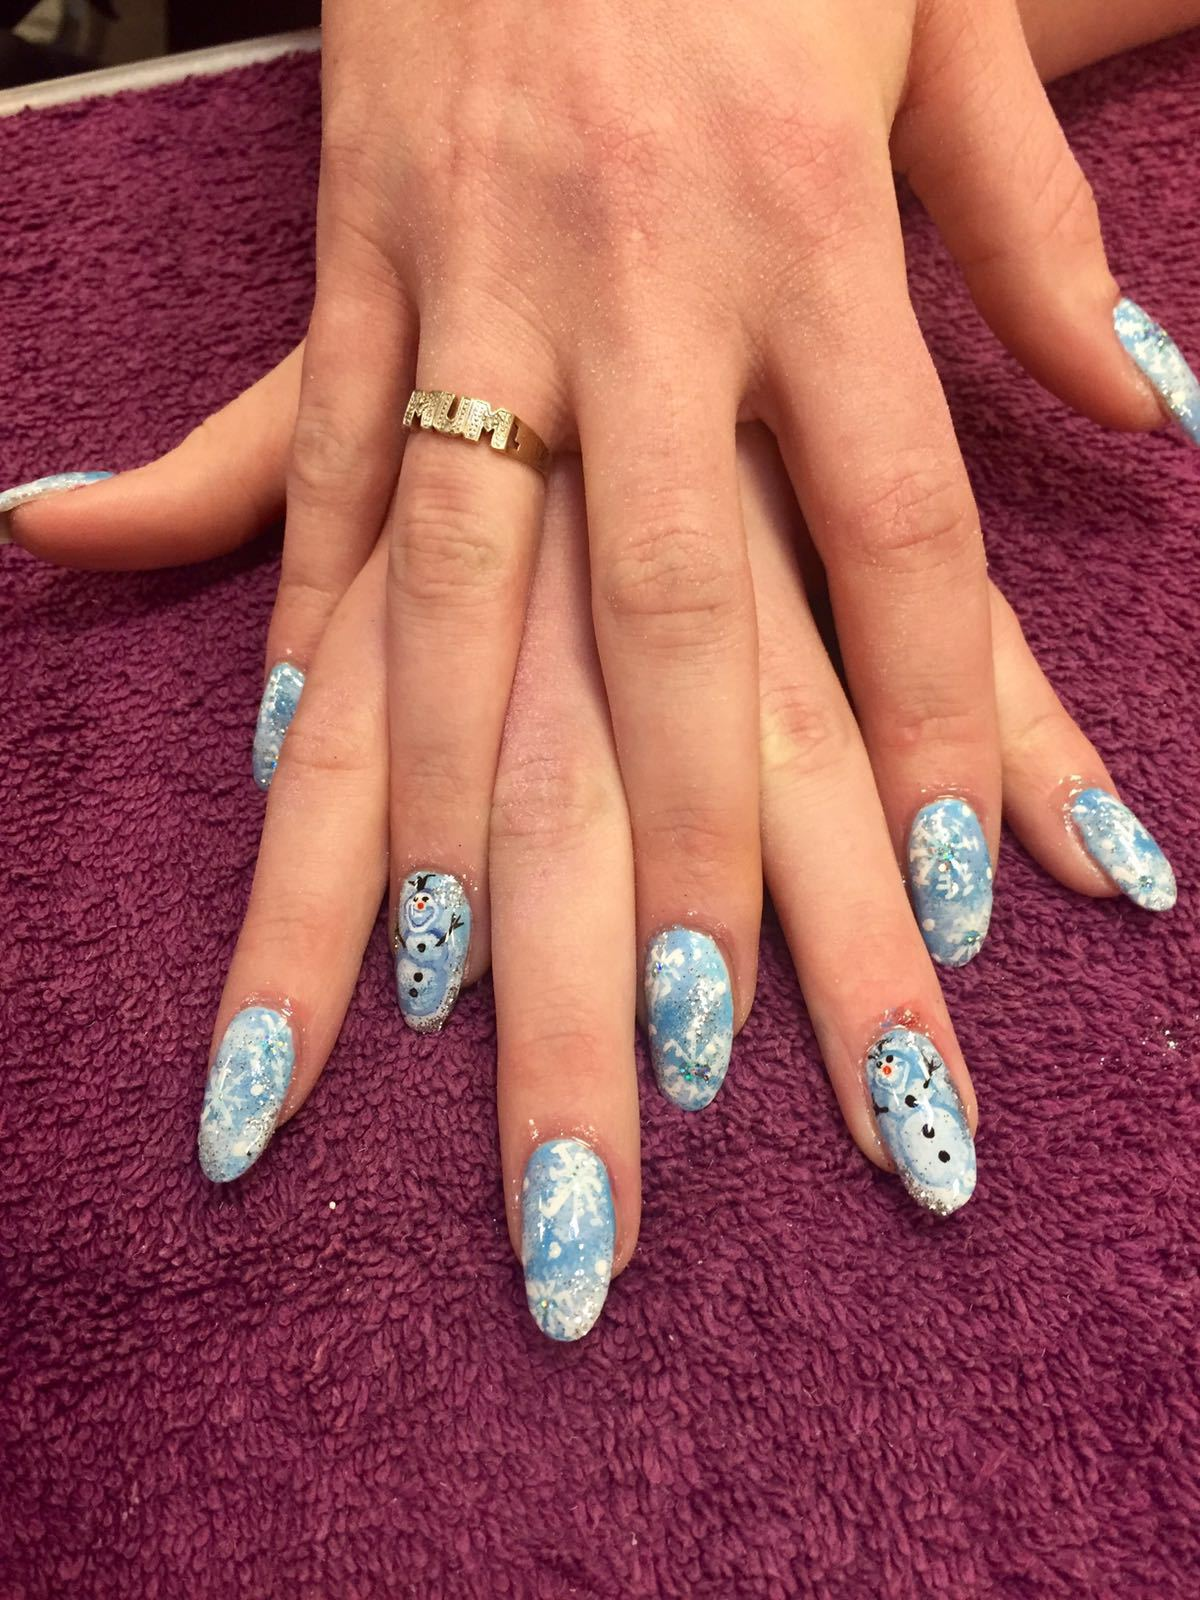 Sky blue nails painted with snowflake and snowman pattern